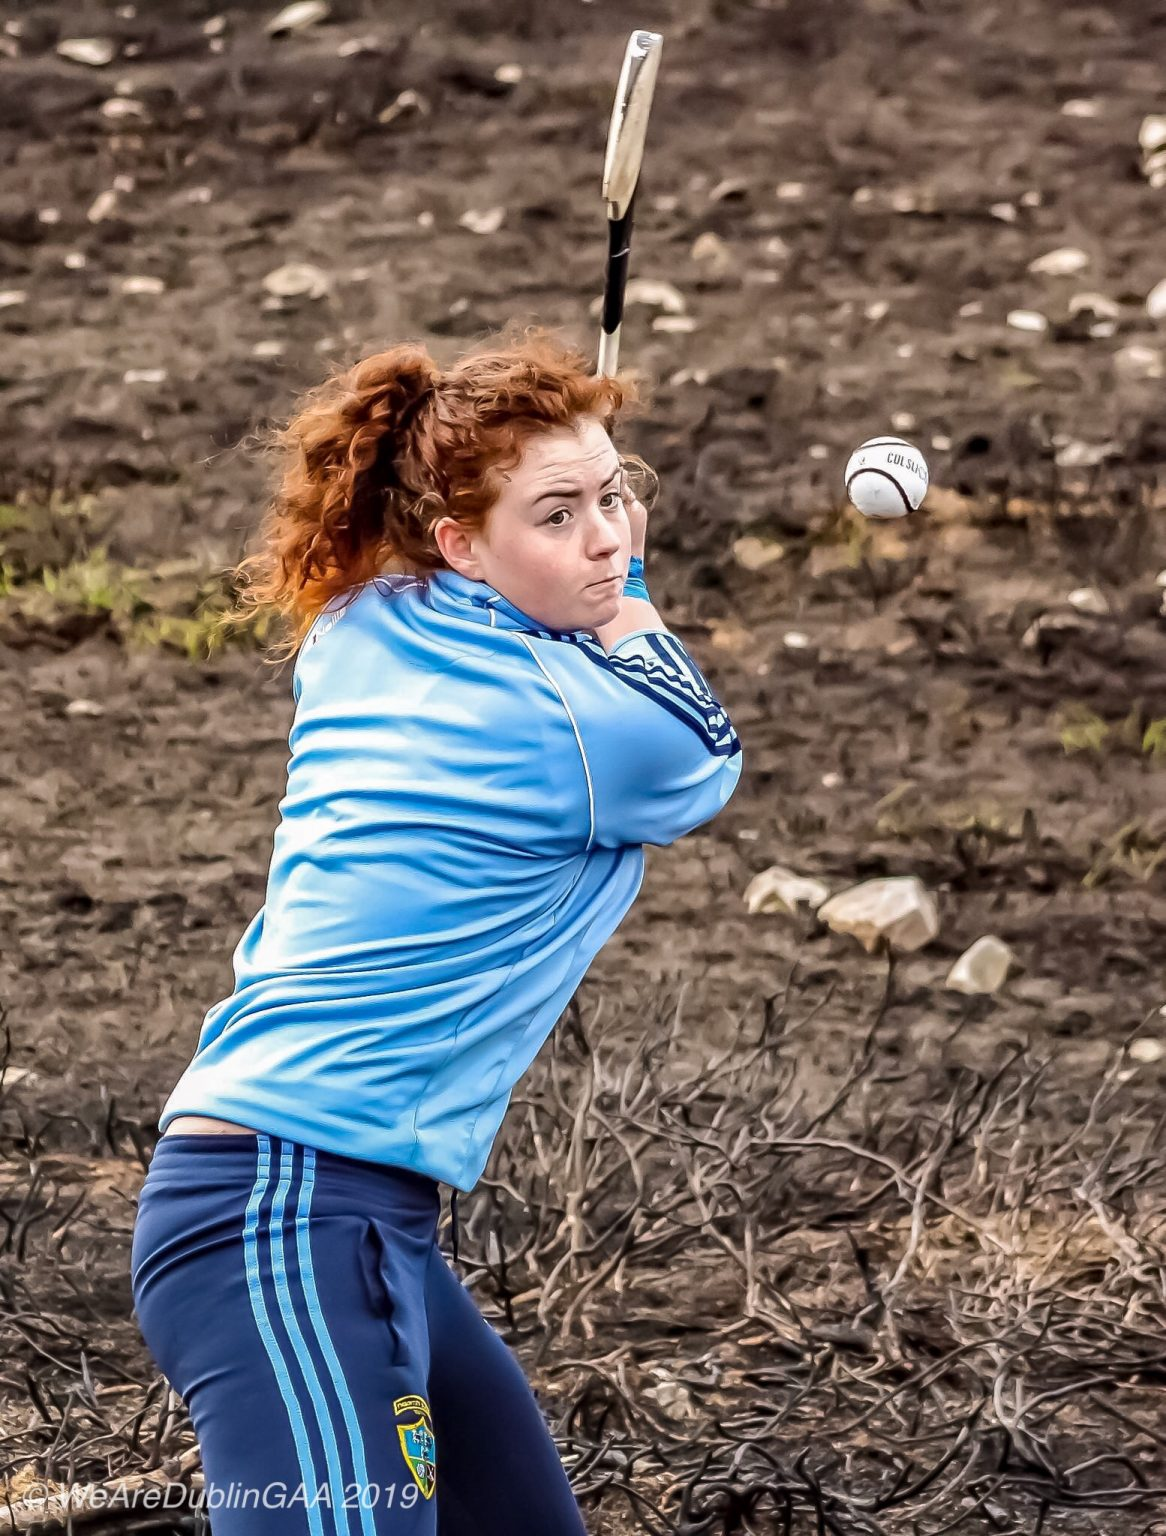 Dublin Camogie Goalkeeper Faye McCarthy In a light blue tracksuit top and navy bottoms just about to strike the ball with her hurl during the Dublin Camogie Poc Fada